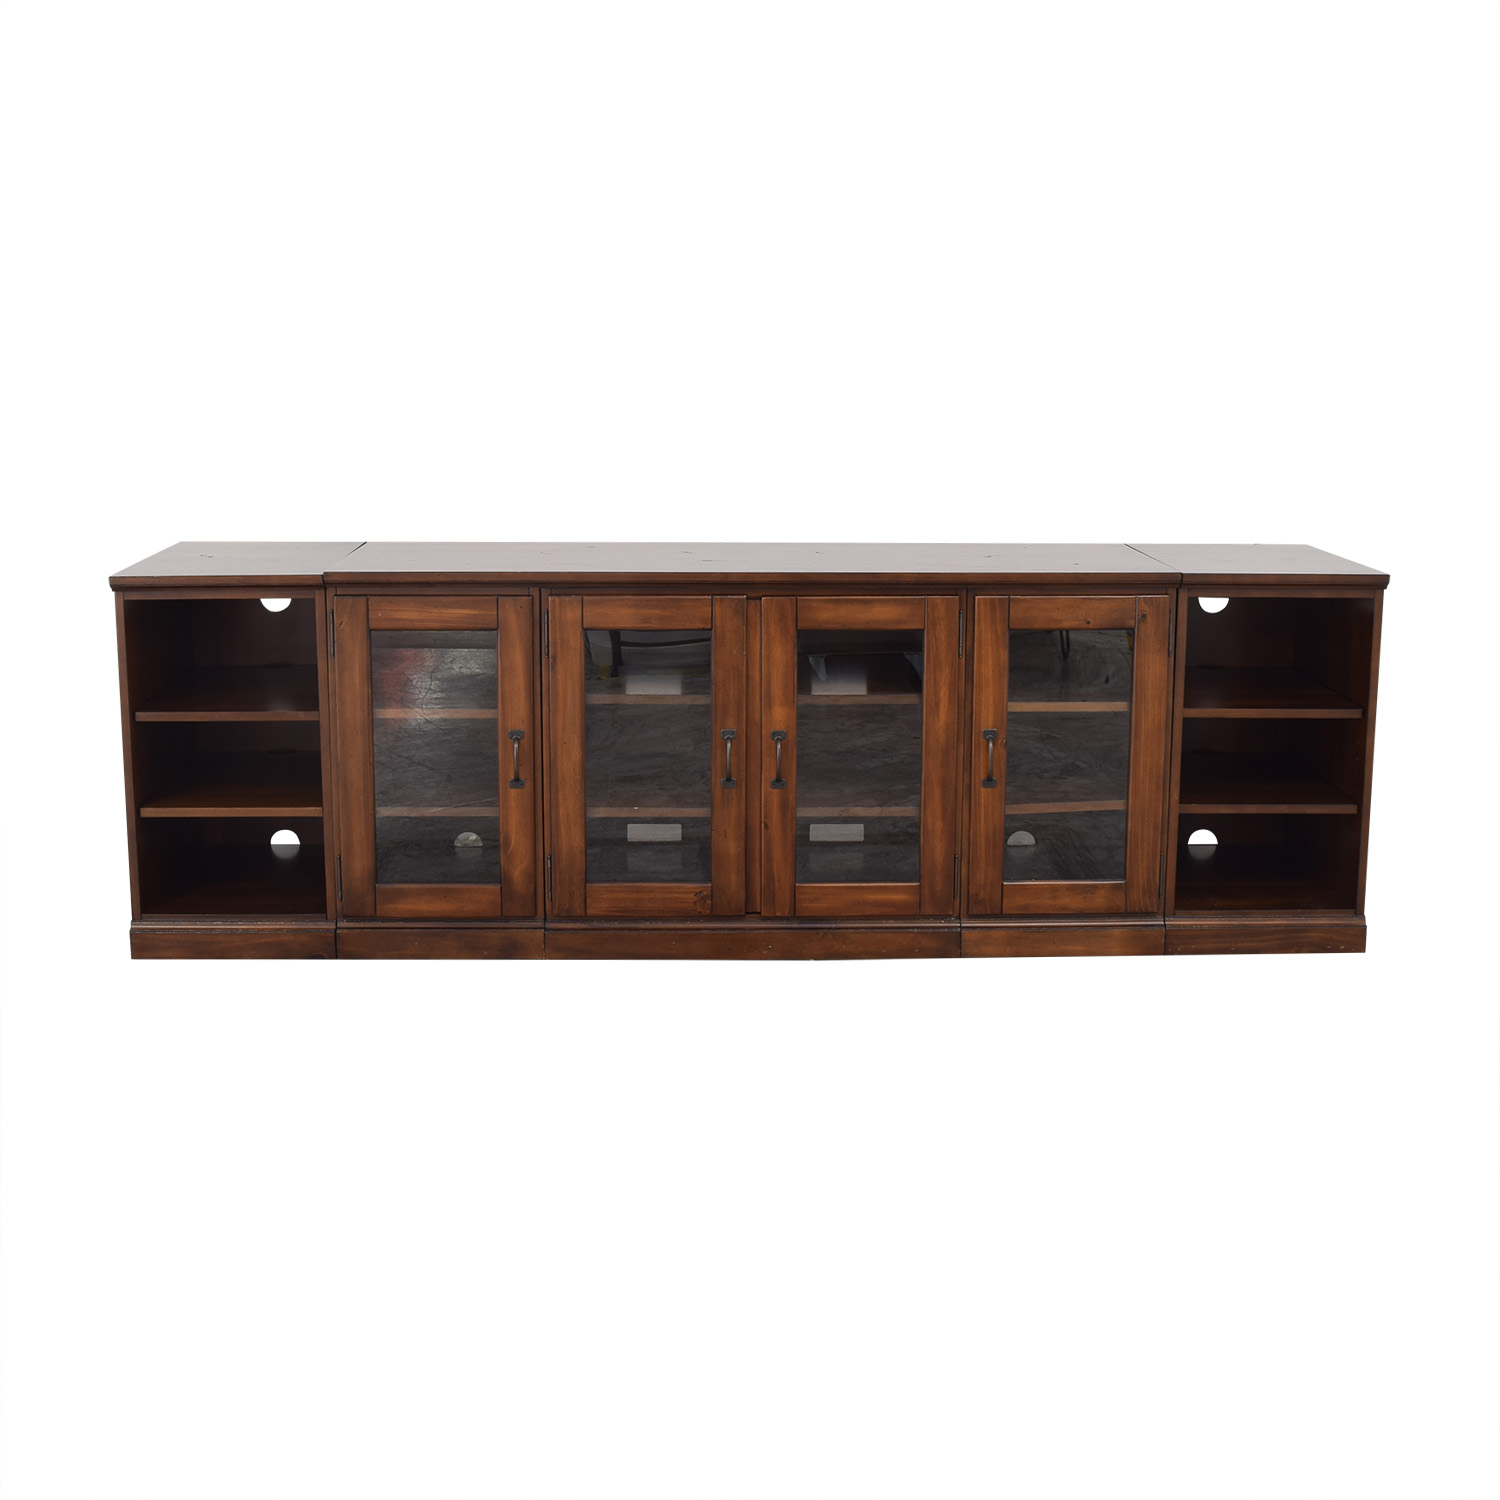 Pottery Barn Pottery Barn Media Console price